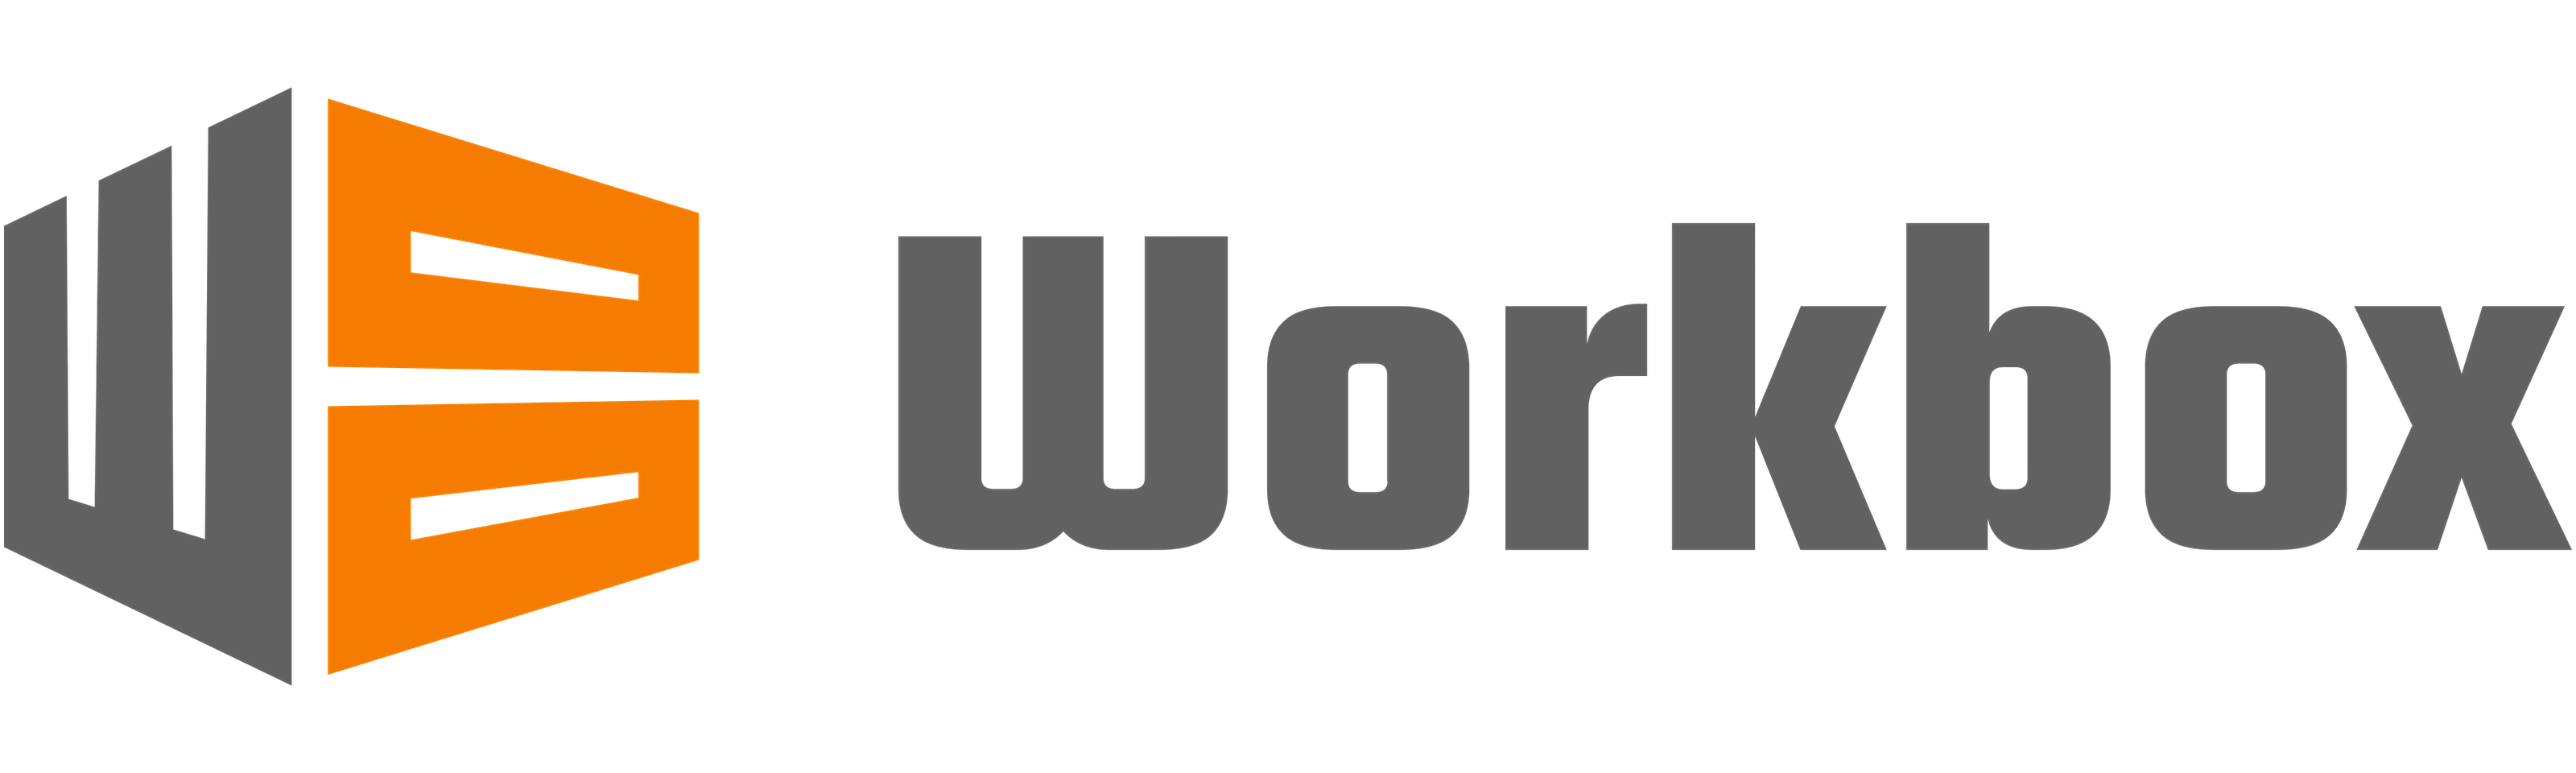 The Workbox logo.